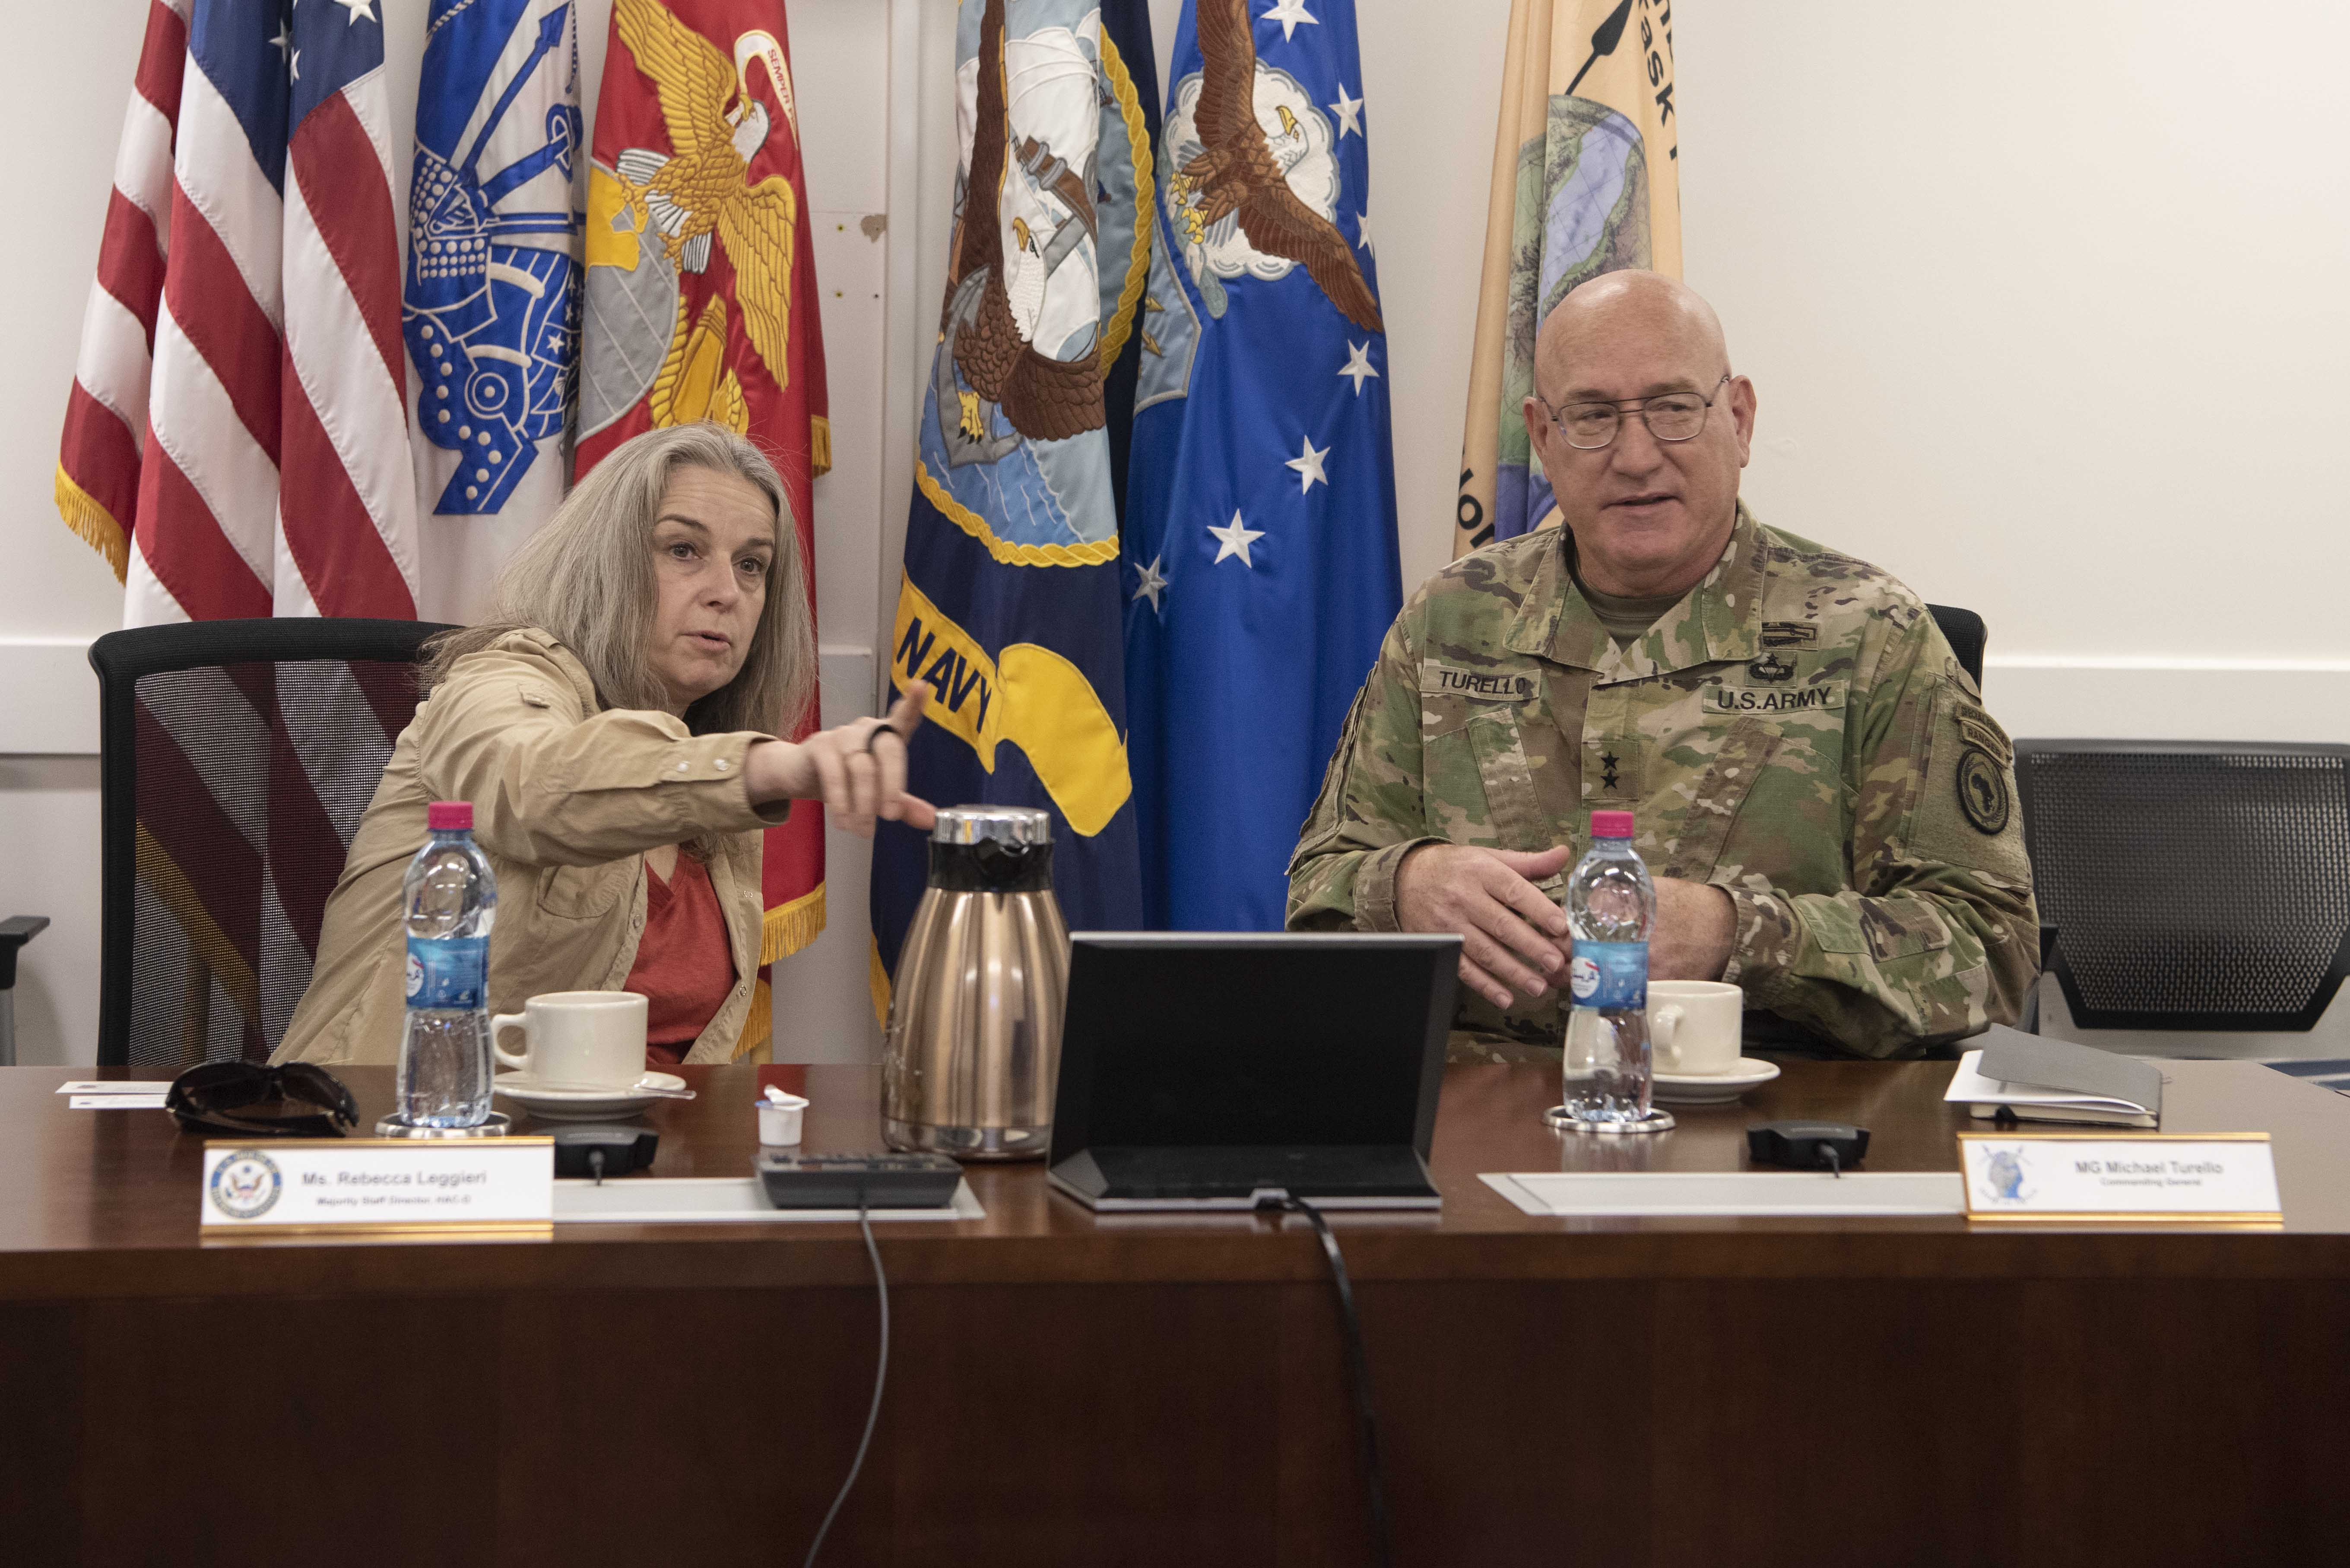 U.S. Army Maj. Gen. Michael D. Turello, commanding general, Combined Joint Task Force-Horn of Africa (CJTF-HOA), right; meets with Rebecca Leggieri, majority staff director, House Appropriations Subcommittee on Defense, at Camp Lemonnier, Djibouti, (CLDJ), Jan. 21, 2020. Leggieri, along with other staff members, visited CLDJ to learn about the CJTF-HOA mission. (U.S. Air Force photo by Tech. Sgt. Ashley Nicole Taylor)